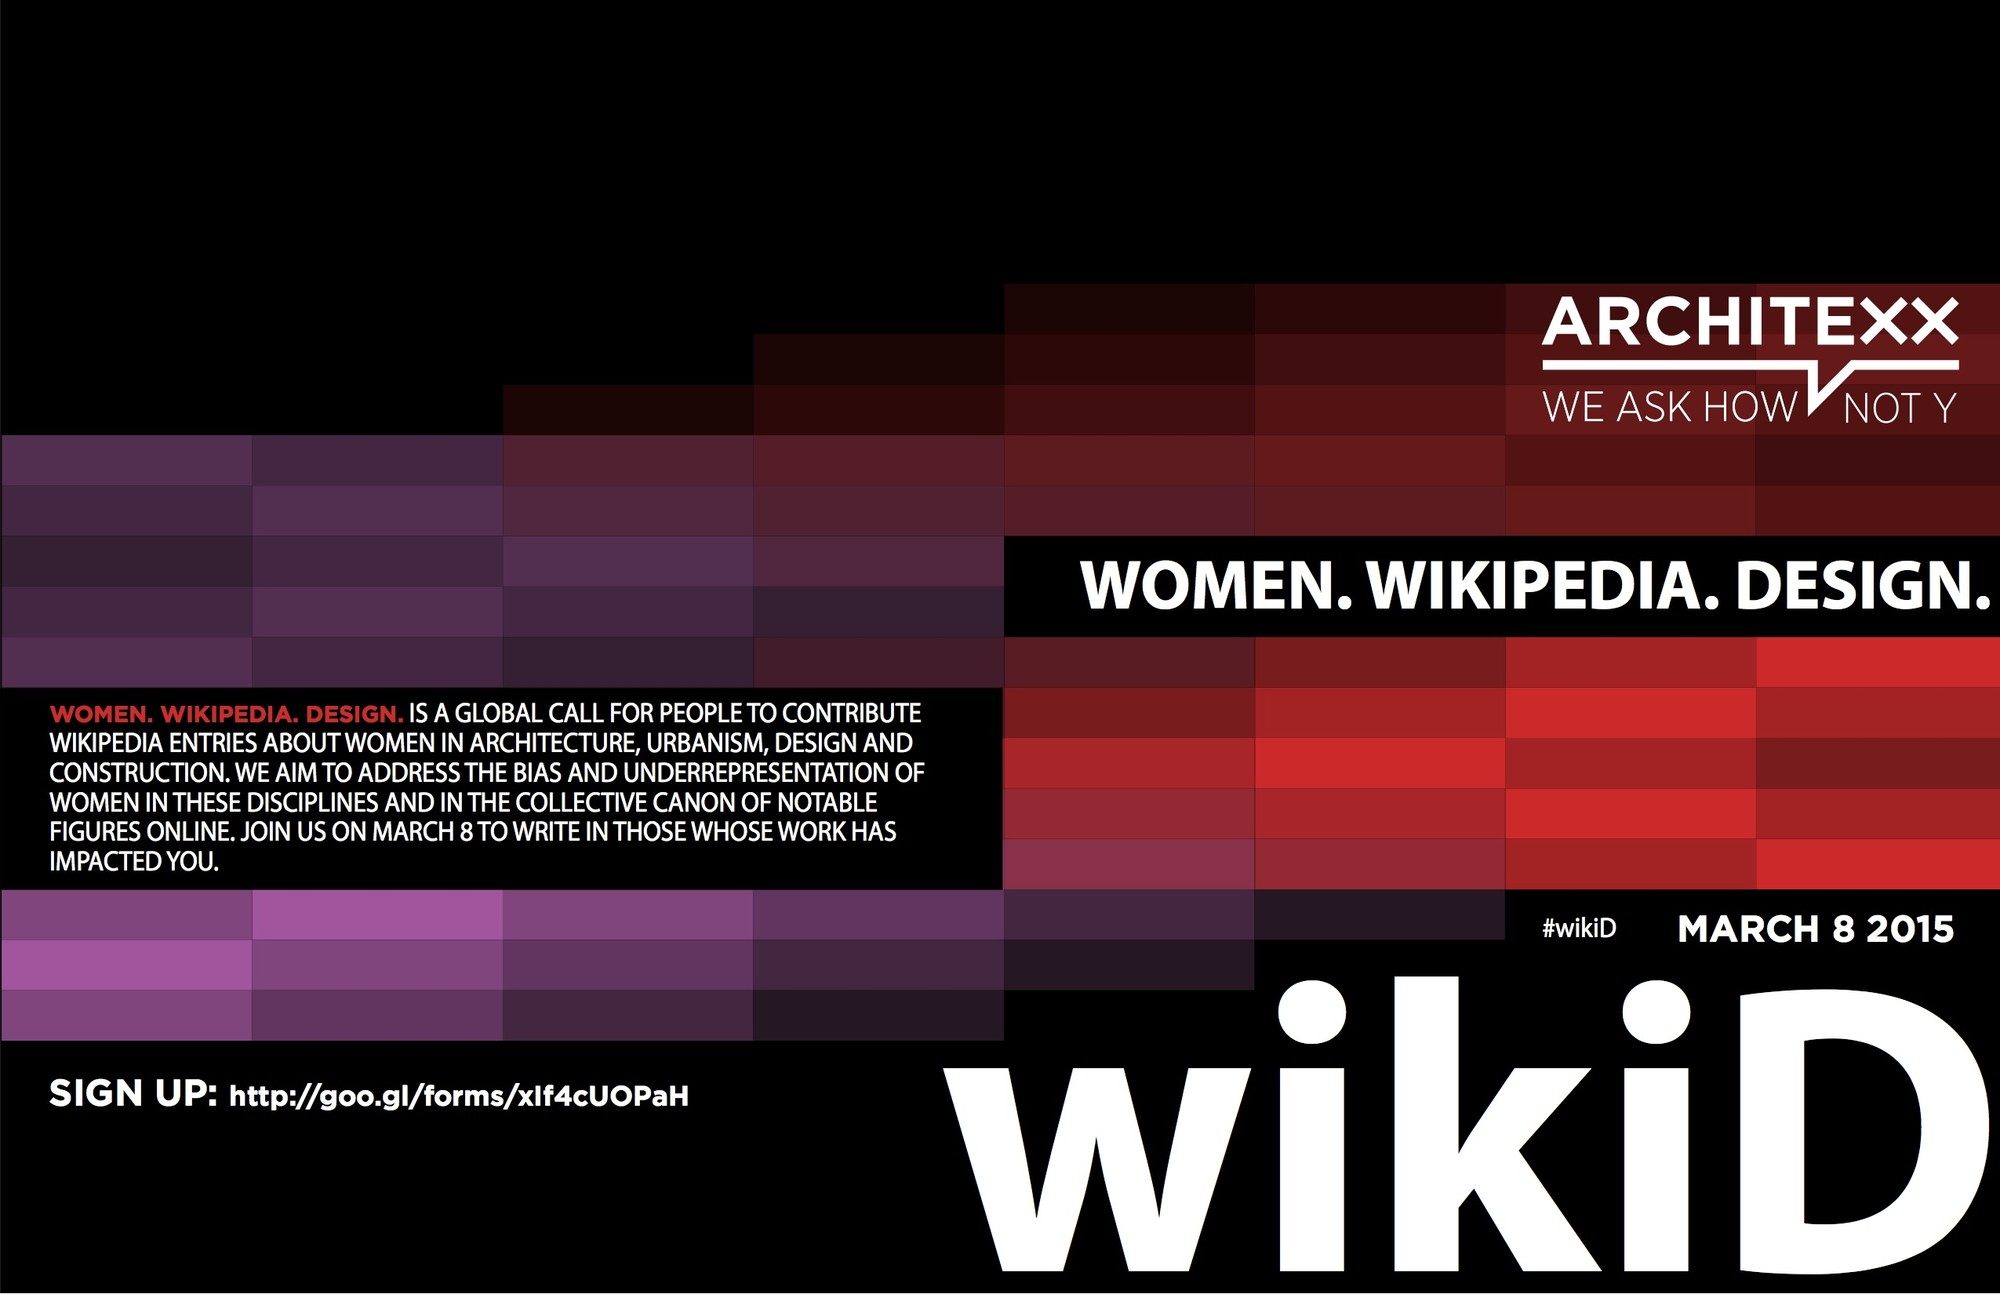 #wikiD: Help ArchiteXX Add Women Architects to Wikipedia, Courtesy of Architexx